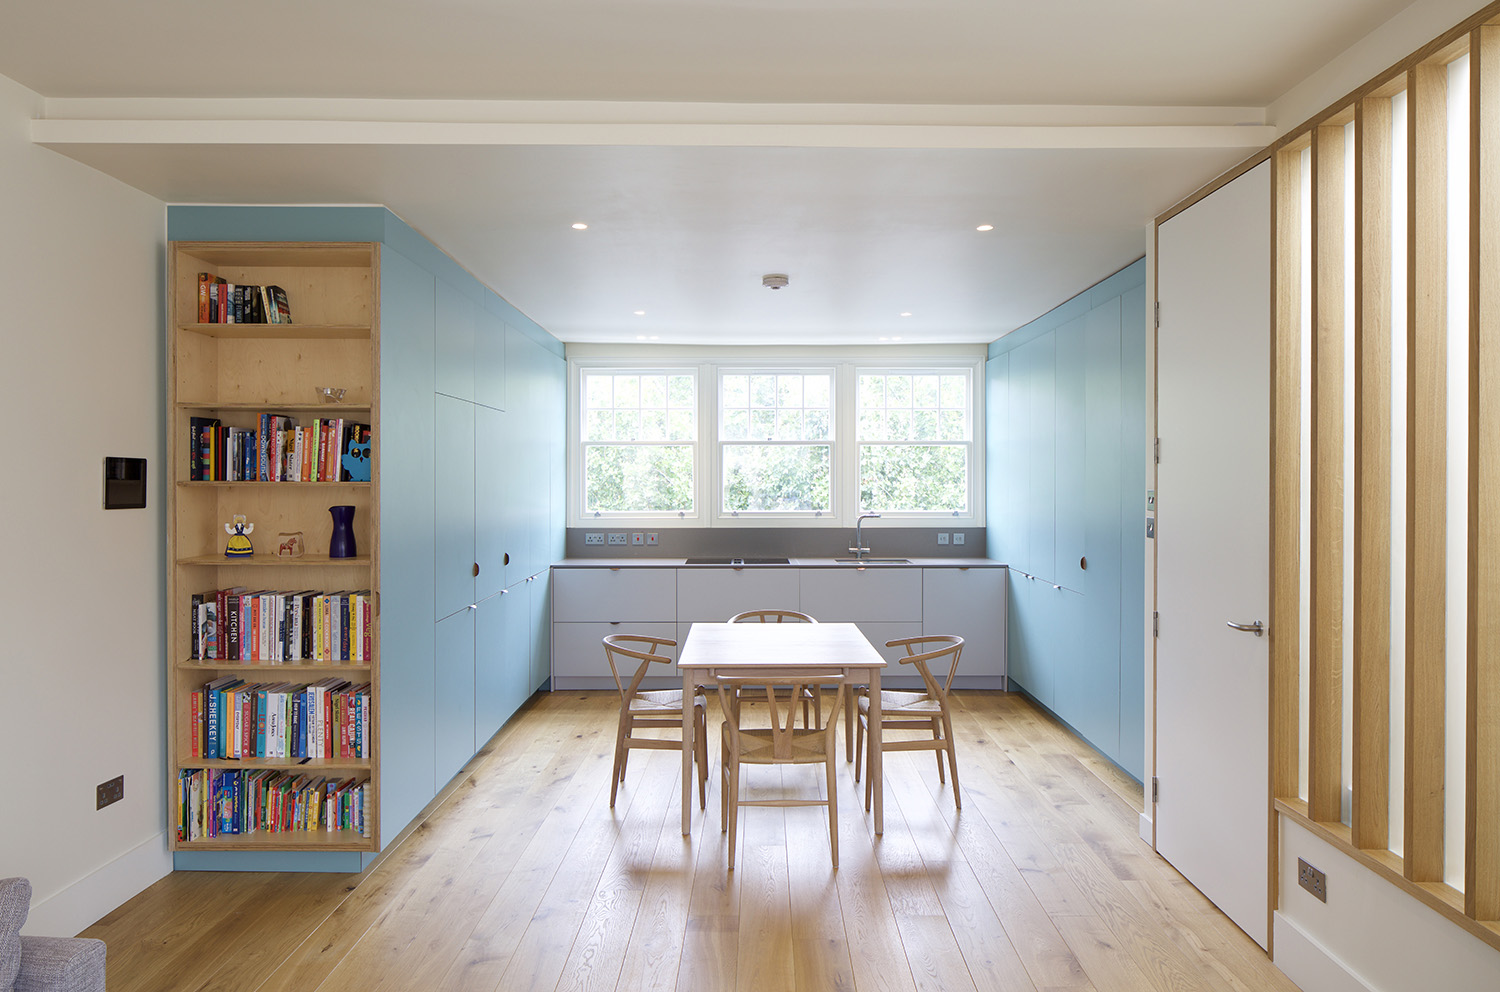 </p> <p>Find your ideal home design pro on designfor-me.com - get matched and see who's interested in your home project. Click image to see more inspiration from our design pros</p> <p>Design by Matt, architect from Islington, London</p> <p>#architecture #homedesign #modernhomes #homeinspiration #kitchens #kitchendesign #kitcheninspiration #kitchenideas #kitchengoals #architecturedetails </p> <p>